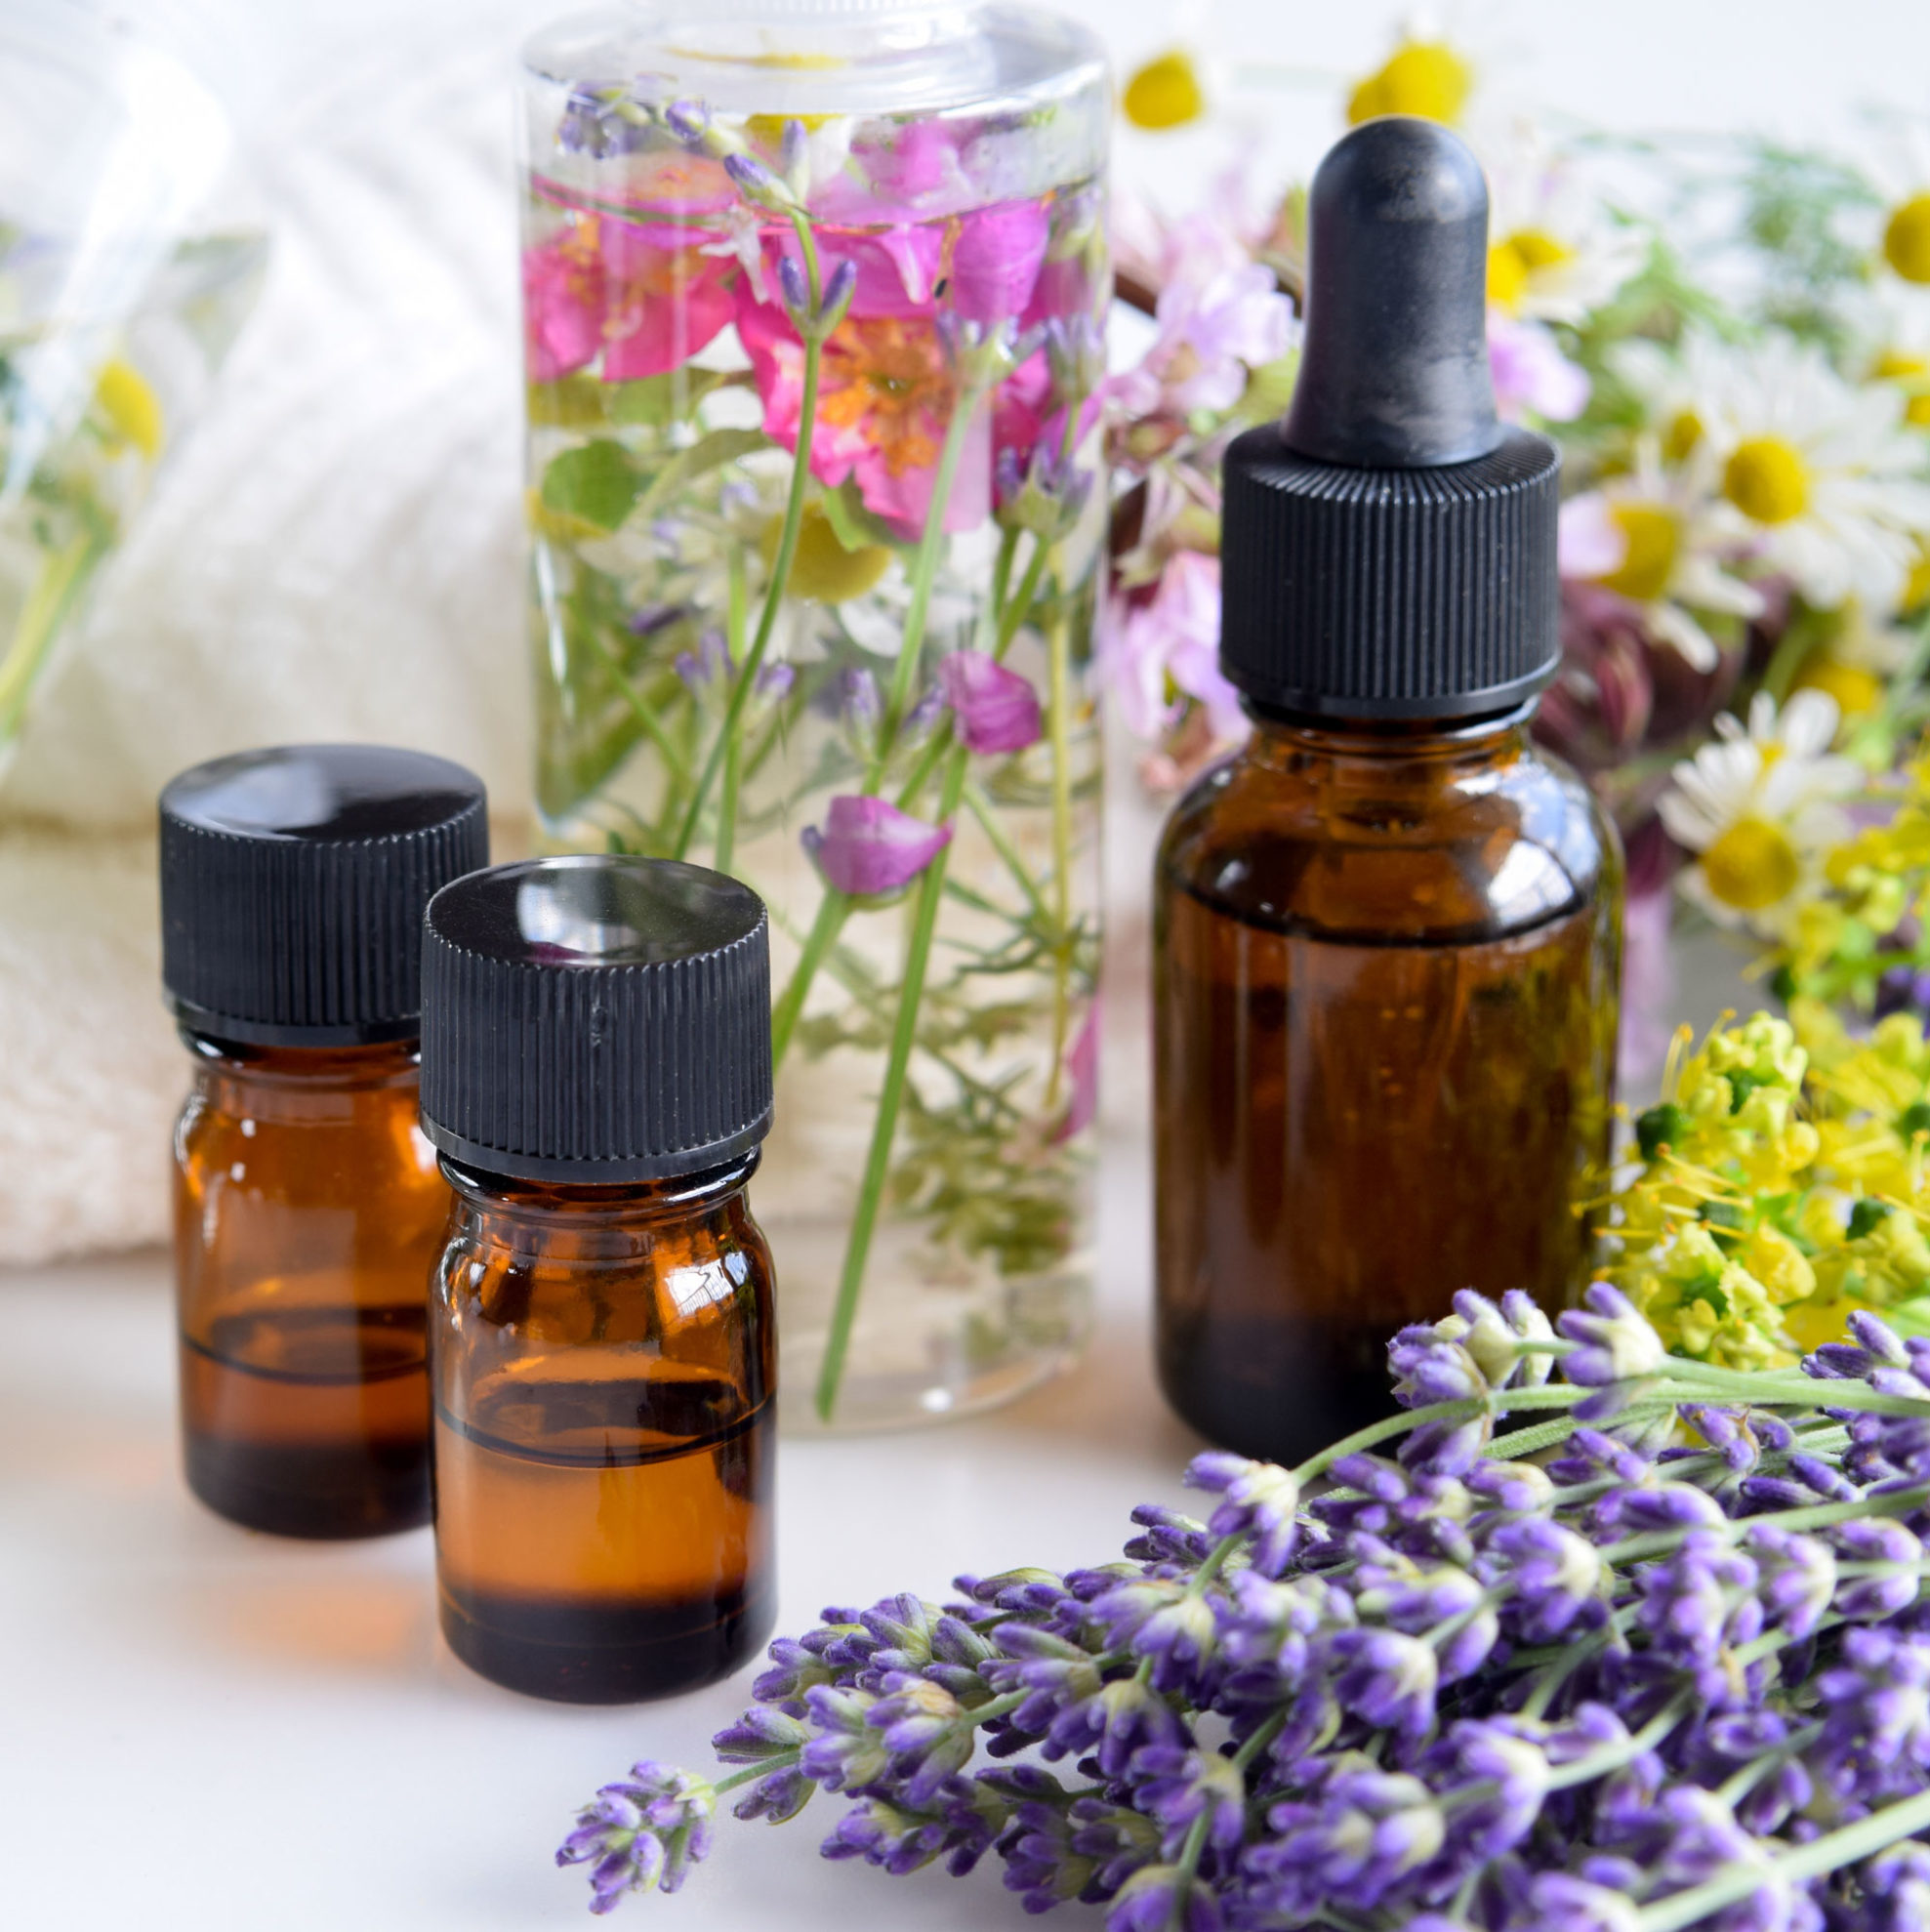 Homeade Aromatherapy Bottles With Various Flowers around Including lilac